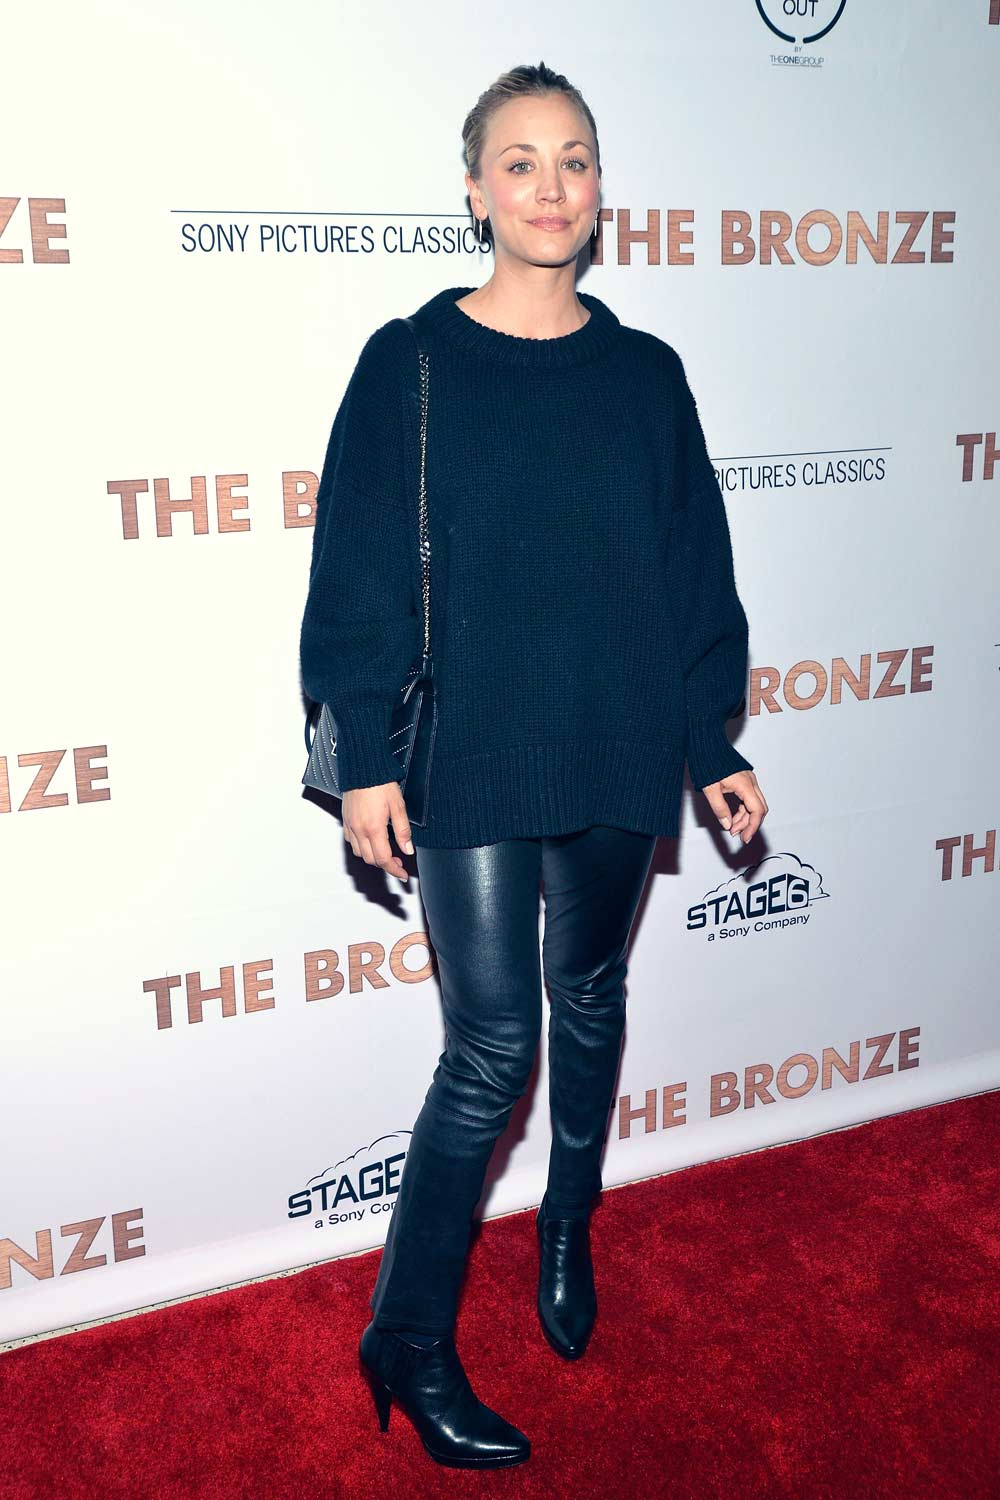 Kaley Cuoco Attends The Premiere Of The Bronze Leather